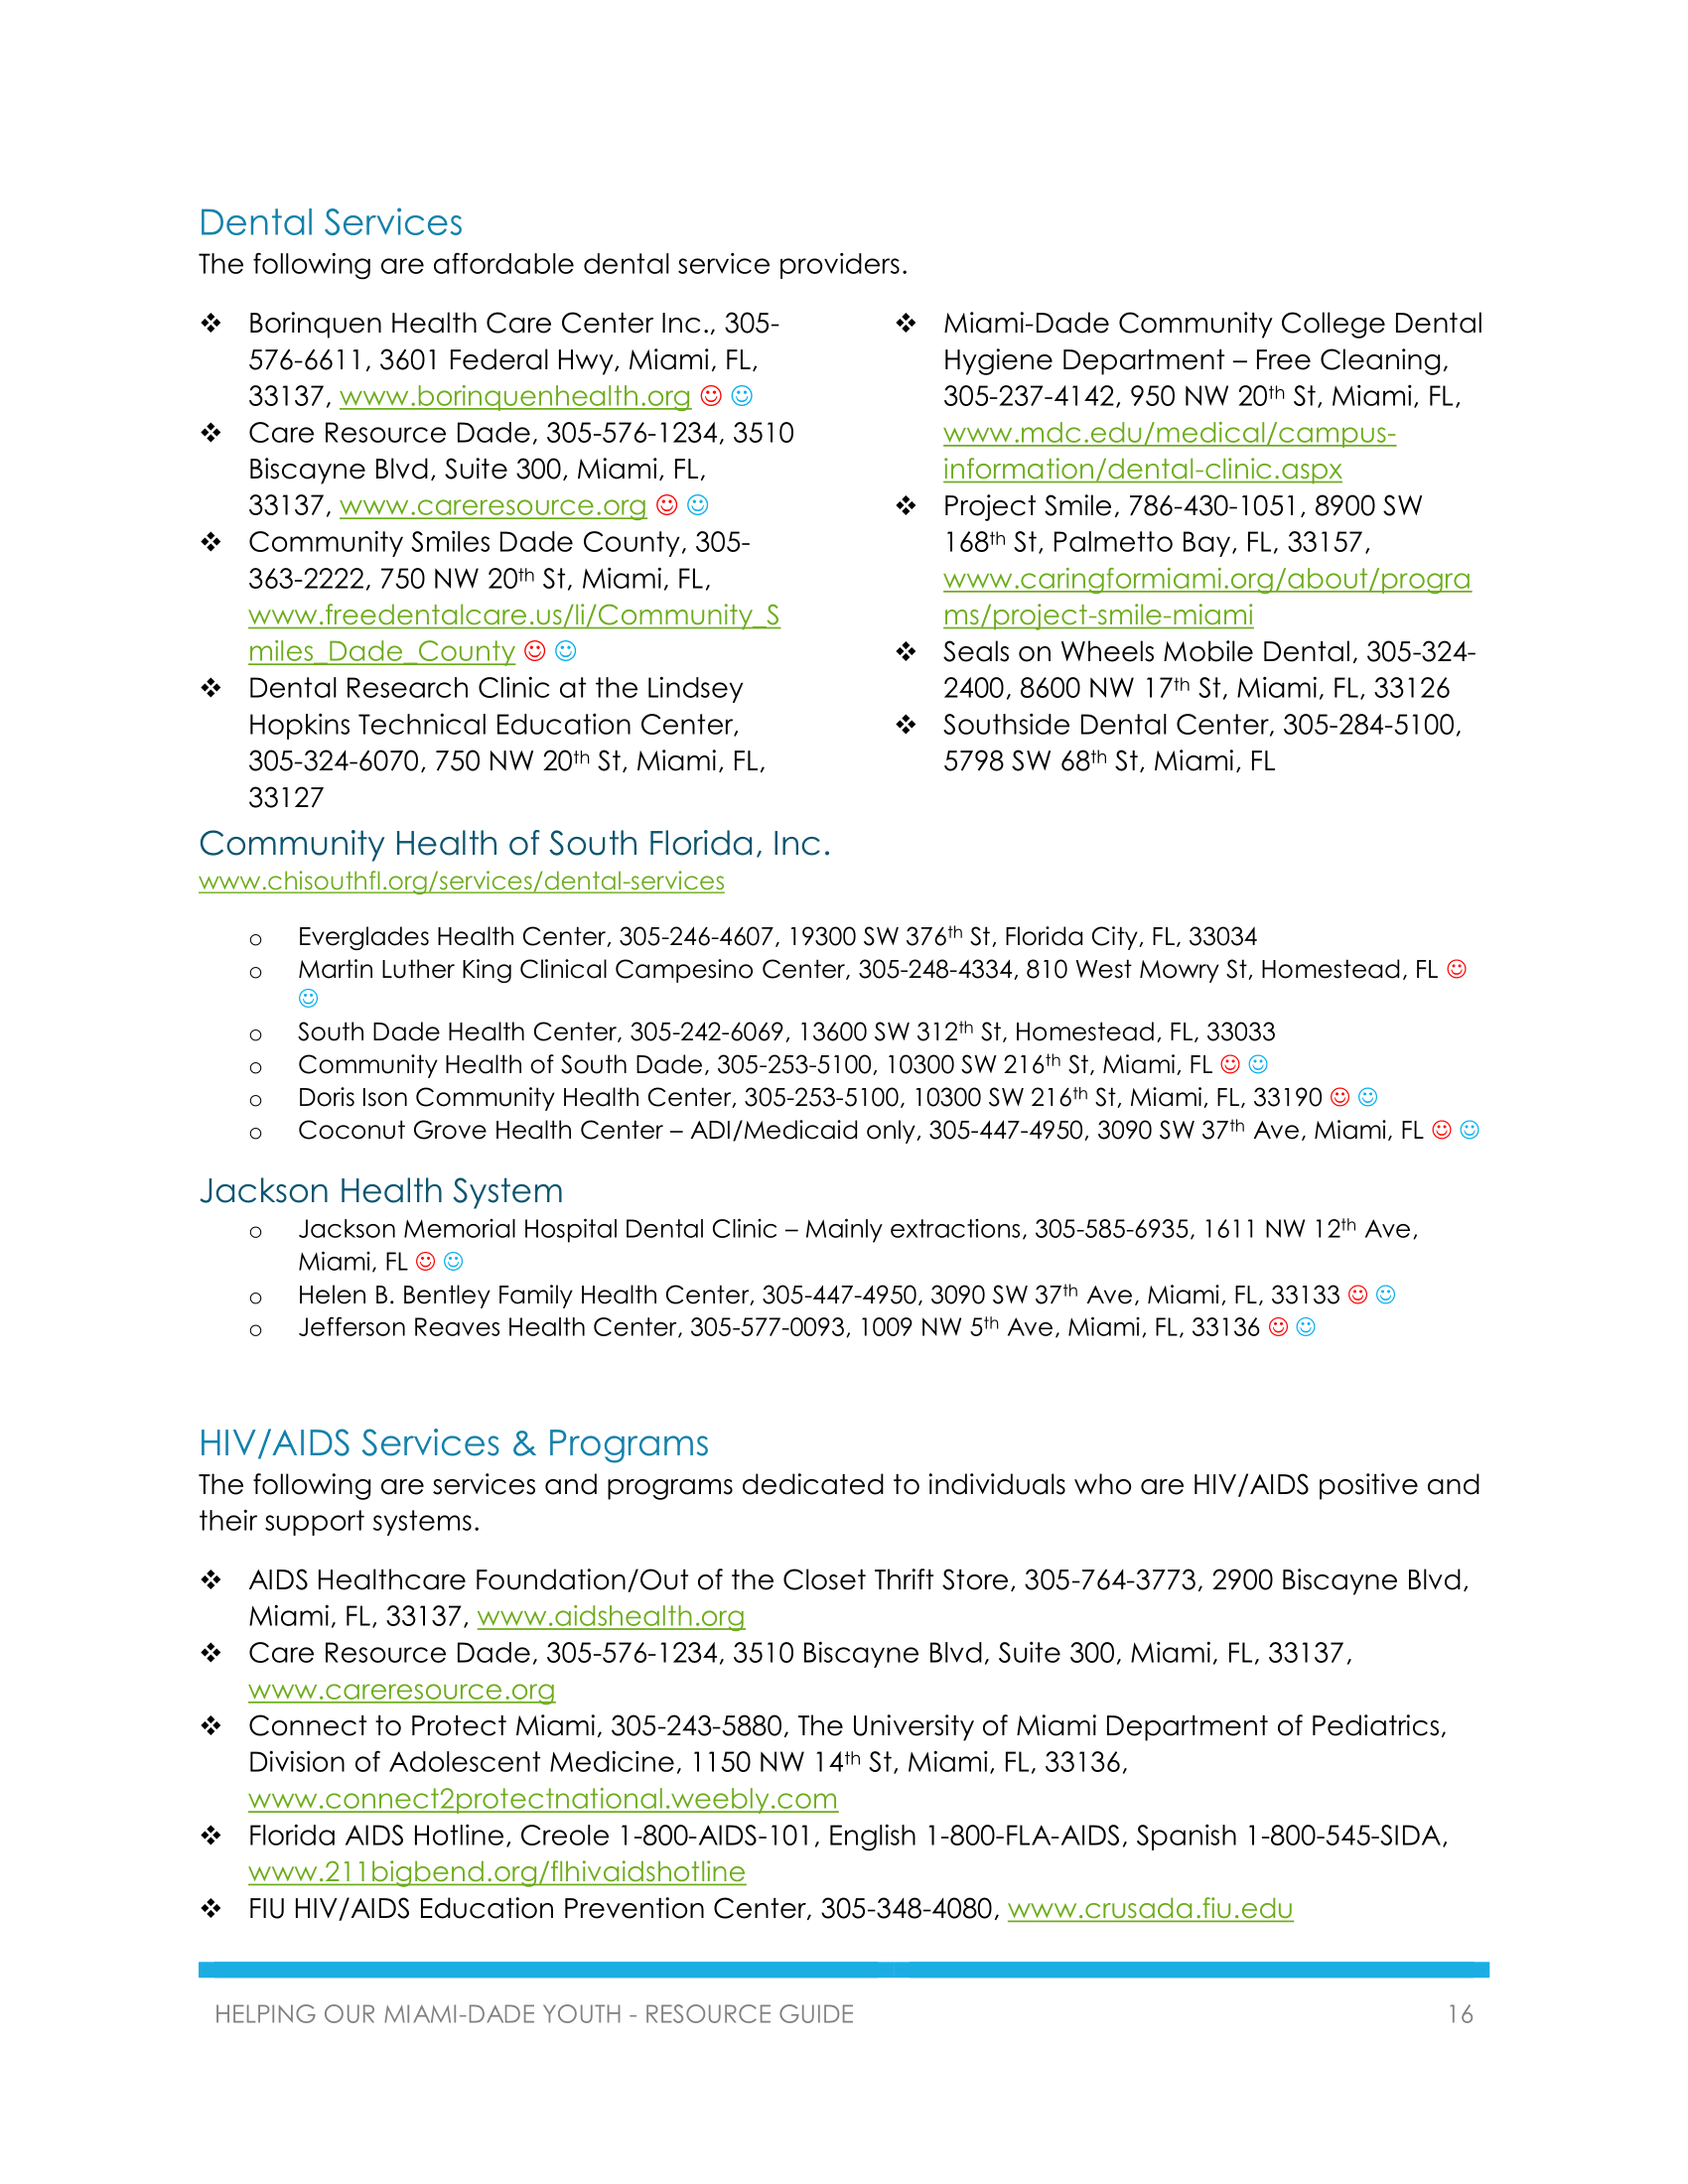 Youth Resource Guide - May 2018-21.png